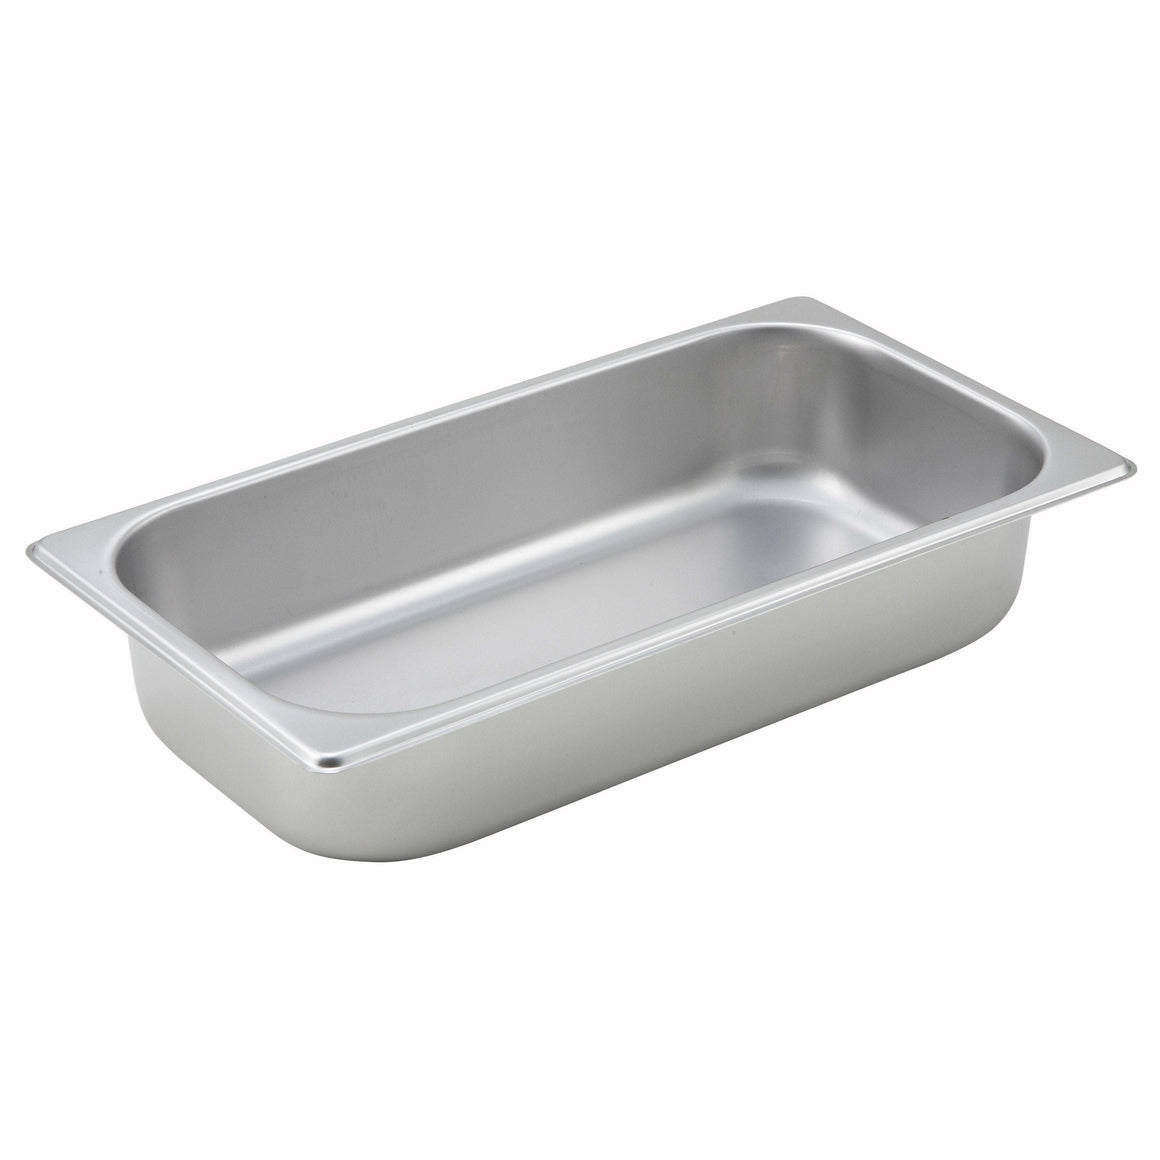 "Winco - SPT2 - Straight-sided Steam Pan, 1/3 Size, 2-1/2"", 25 Ga Stainless Steel - Steam Table"